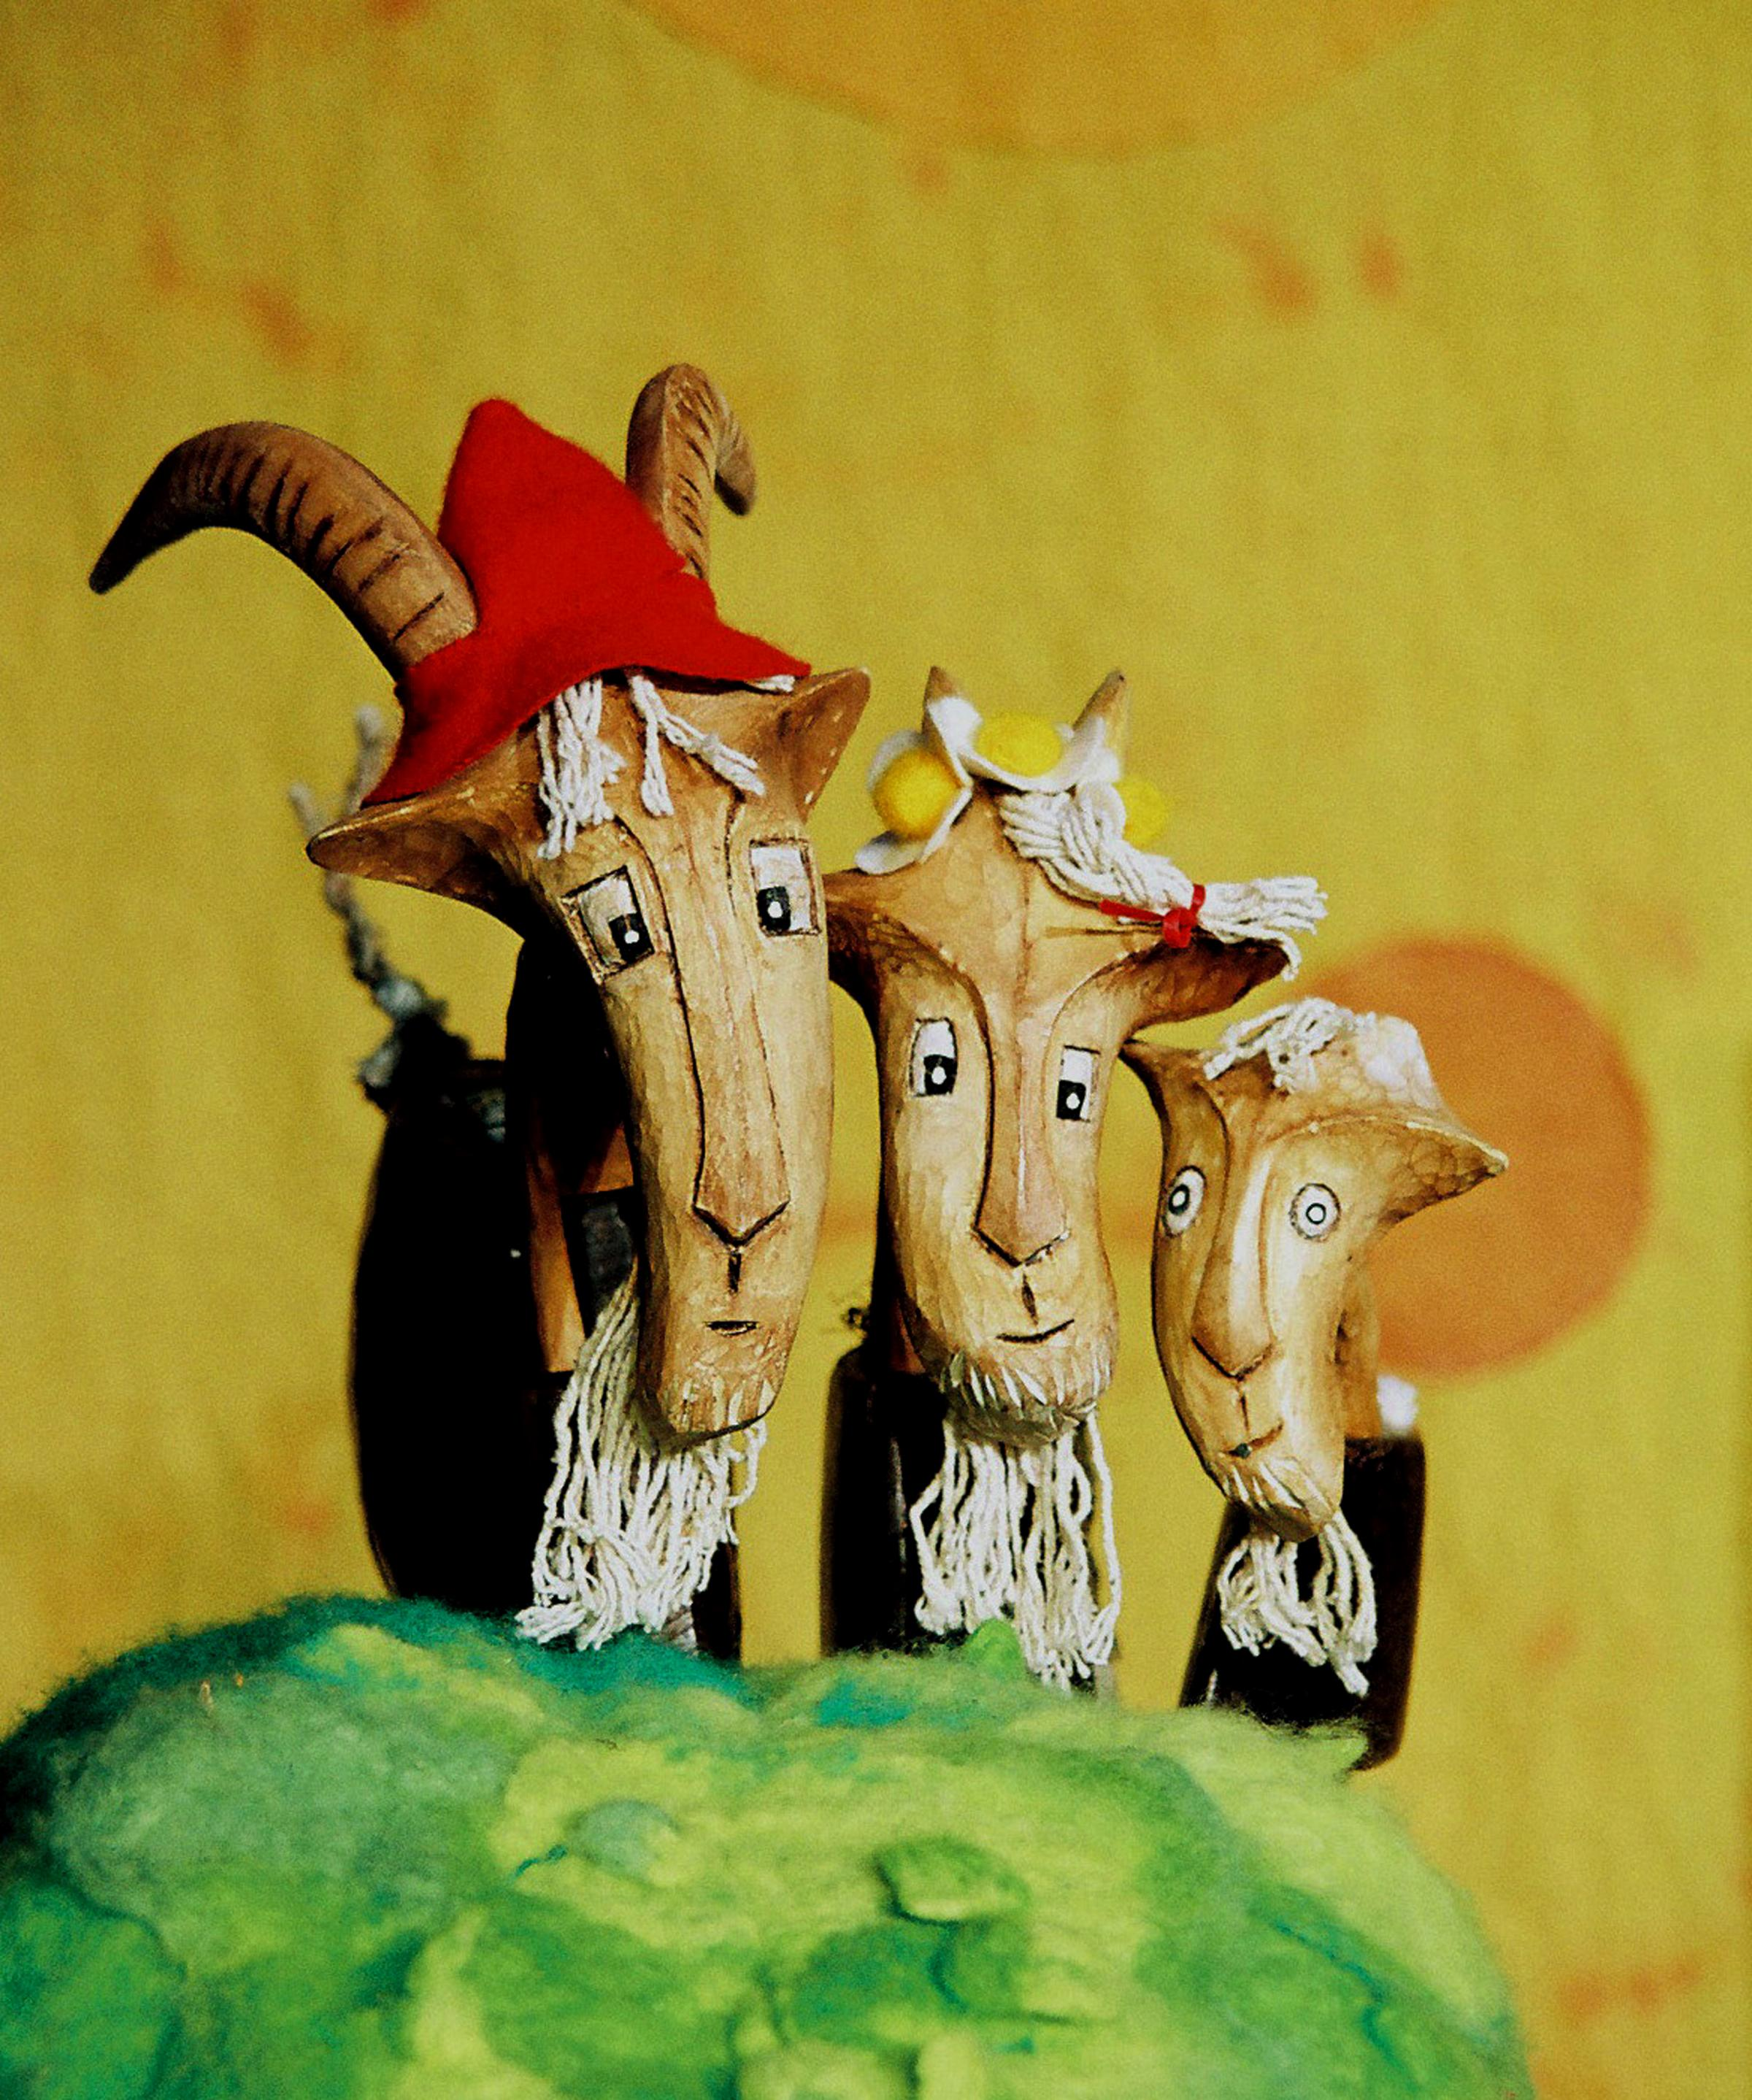 Garlic Theatre presents The Three Billy Goats Gruff